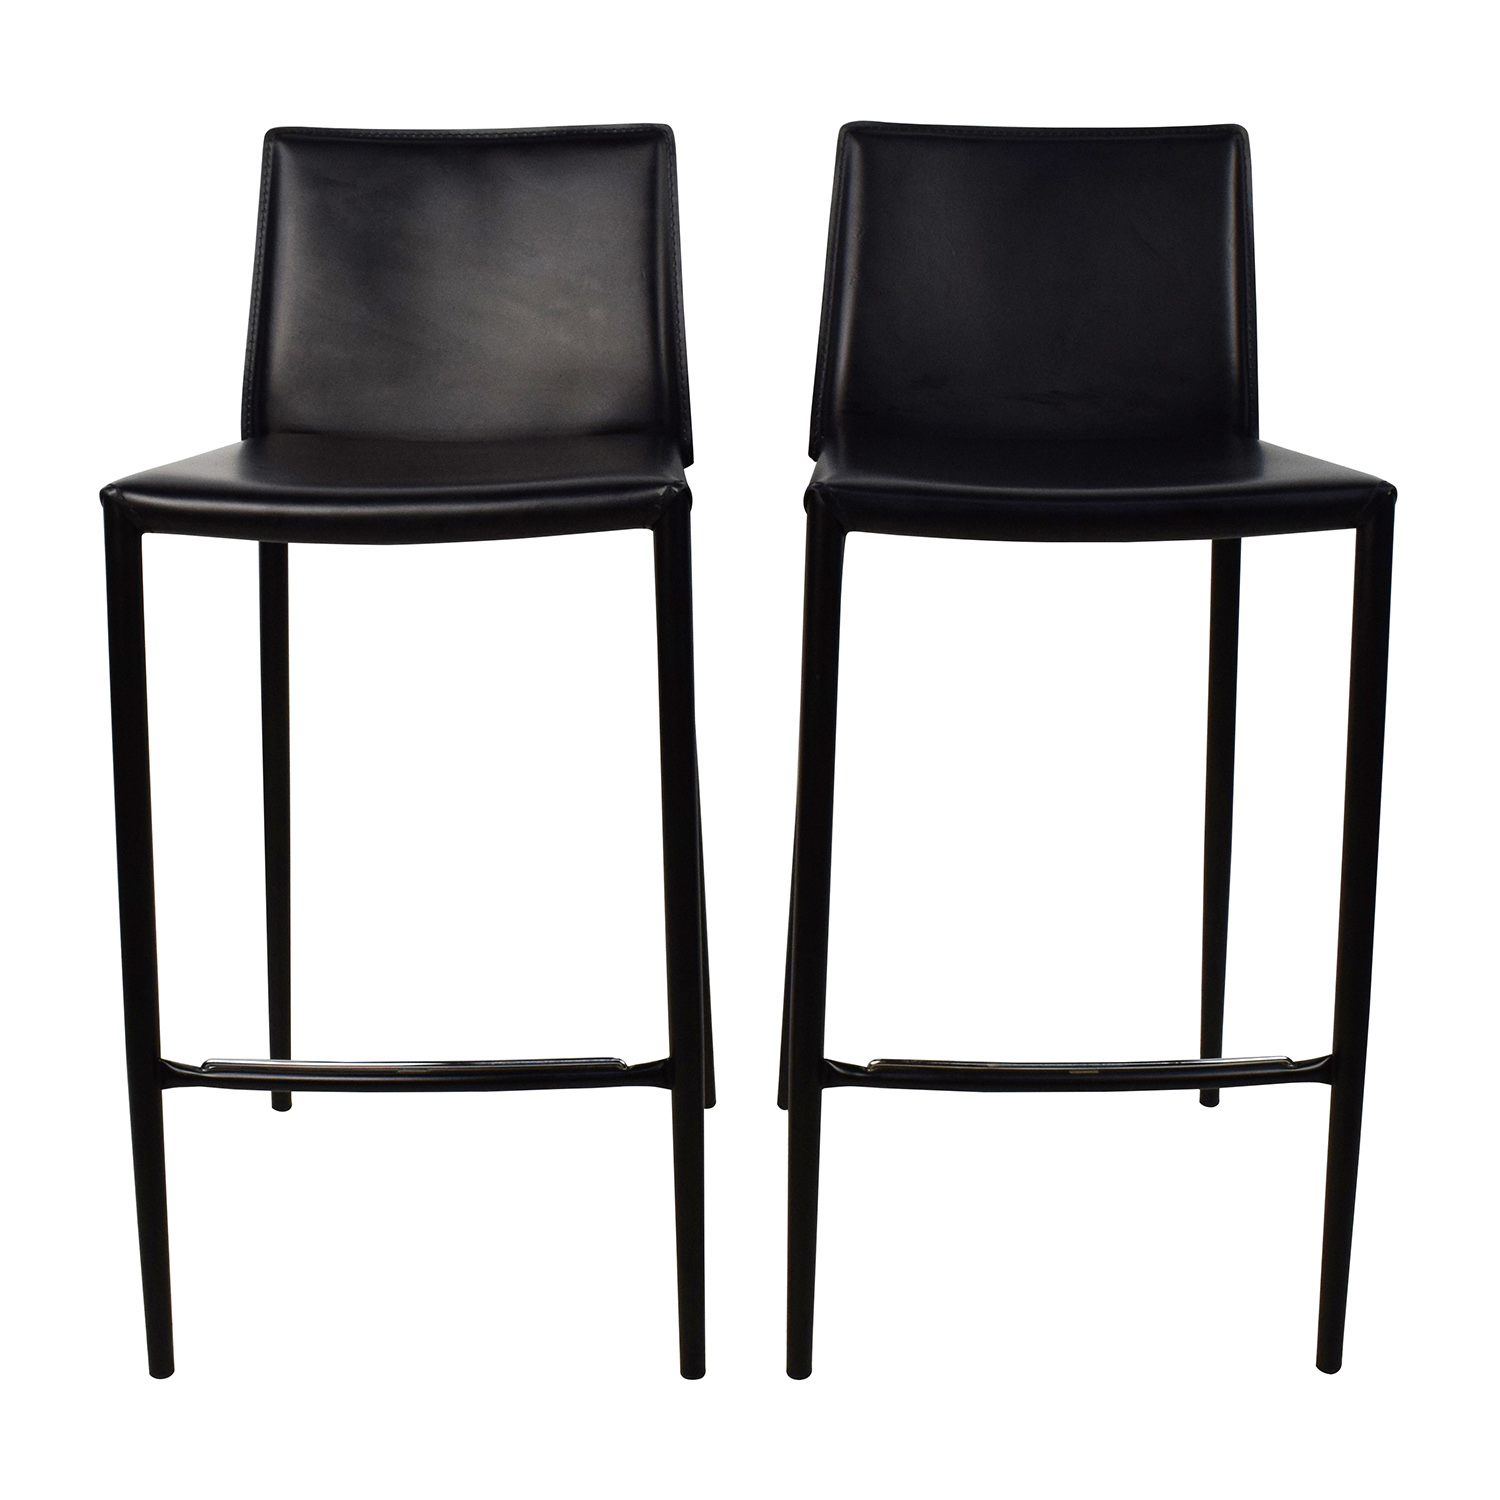 buy Calligaris Boheme Black Leather Bar Stool Set Calligaris